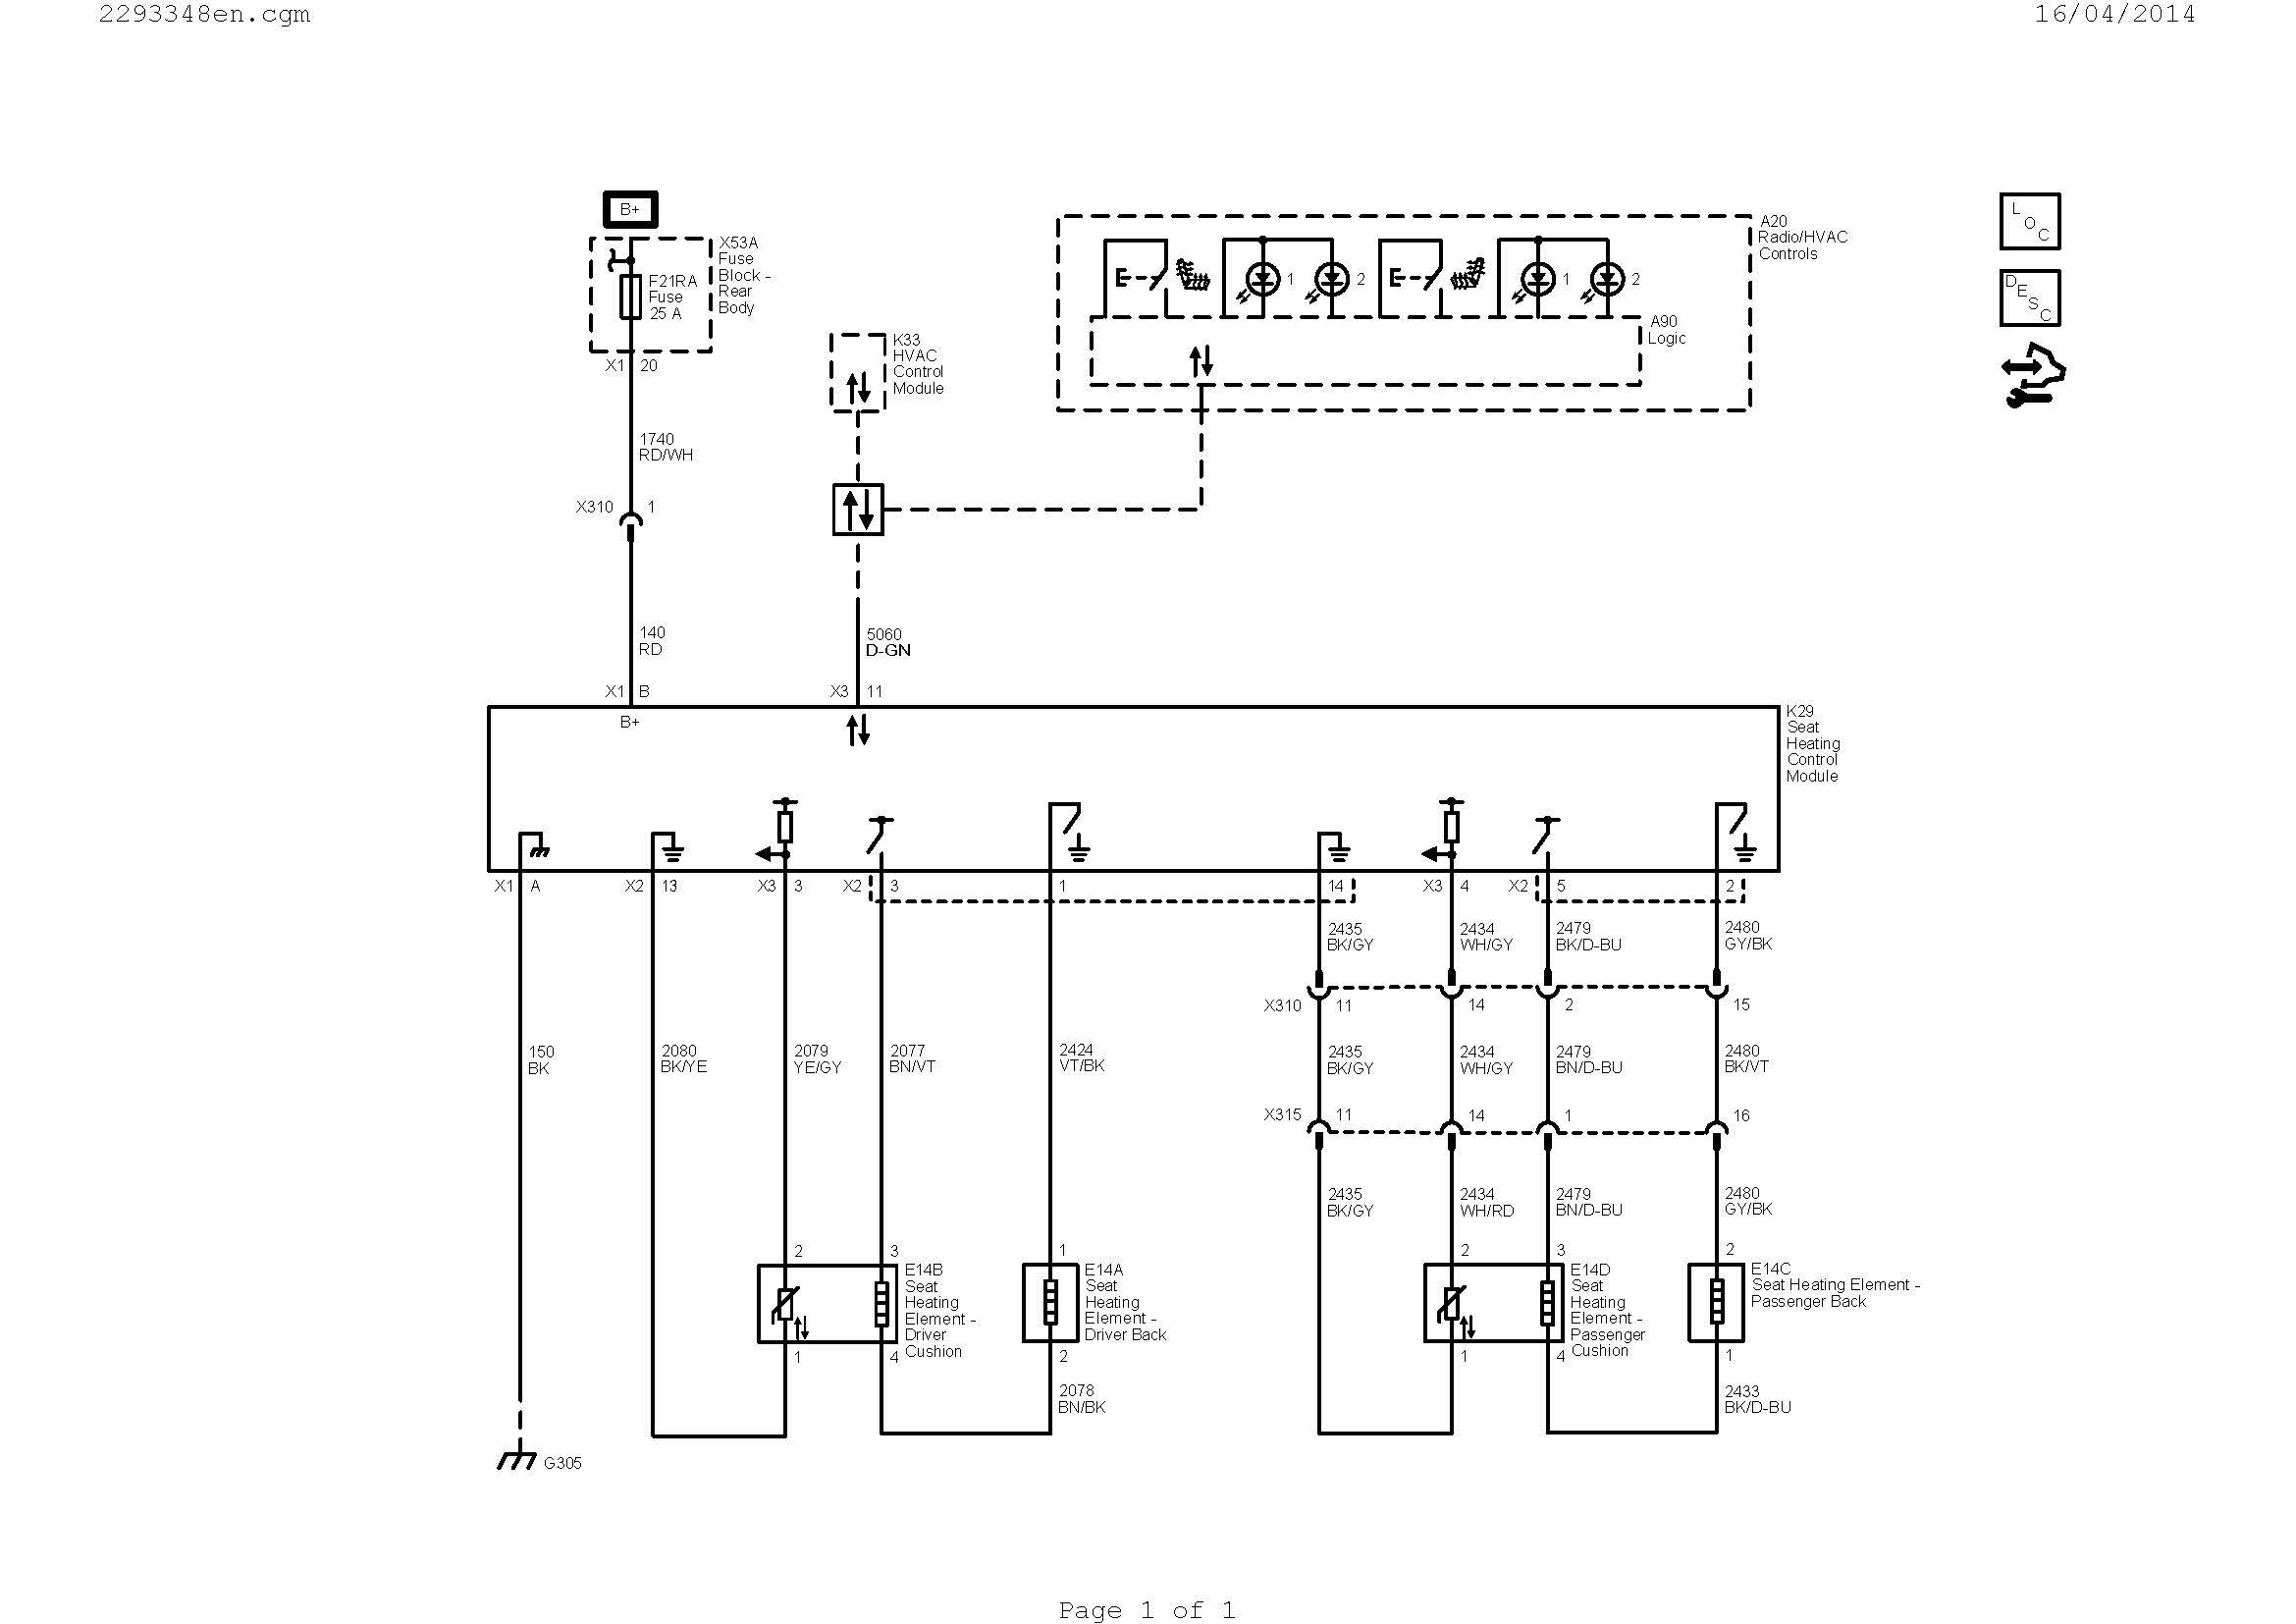 honeywell chronotherm iv plus wiring diagram Collection-Honeywell Chronotherm Iv Plus Wiring Diagram Hvac Relay Wiring Diagram Collection Wiring Diagram for Changeover 12-p